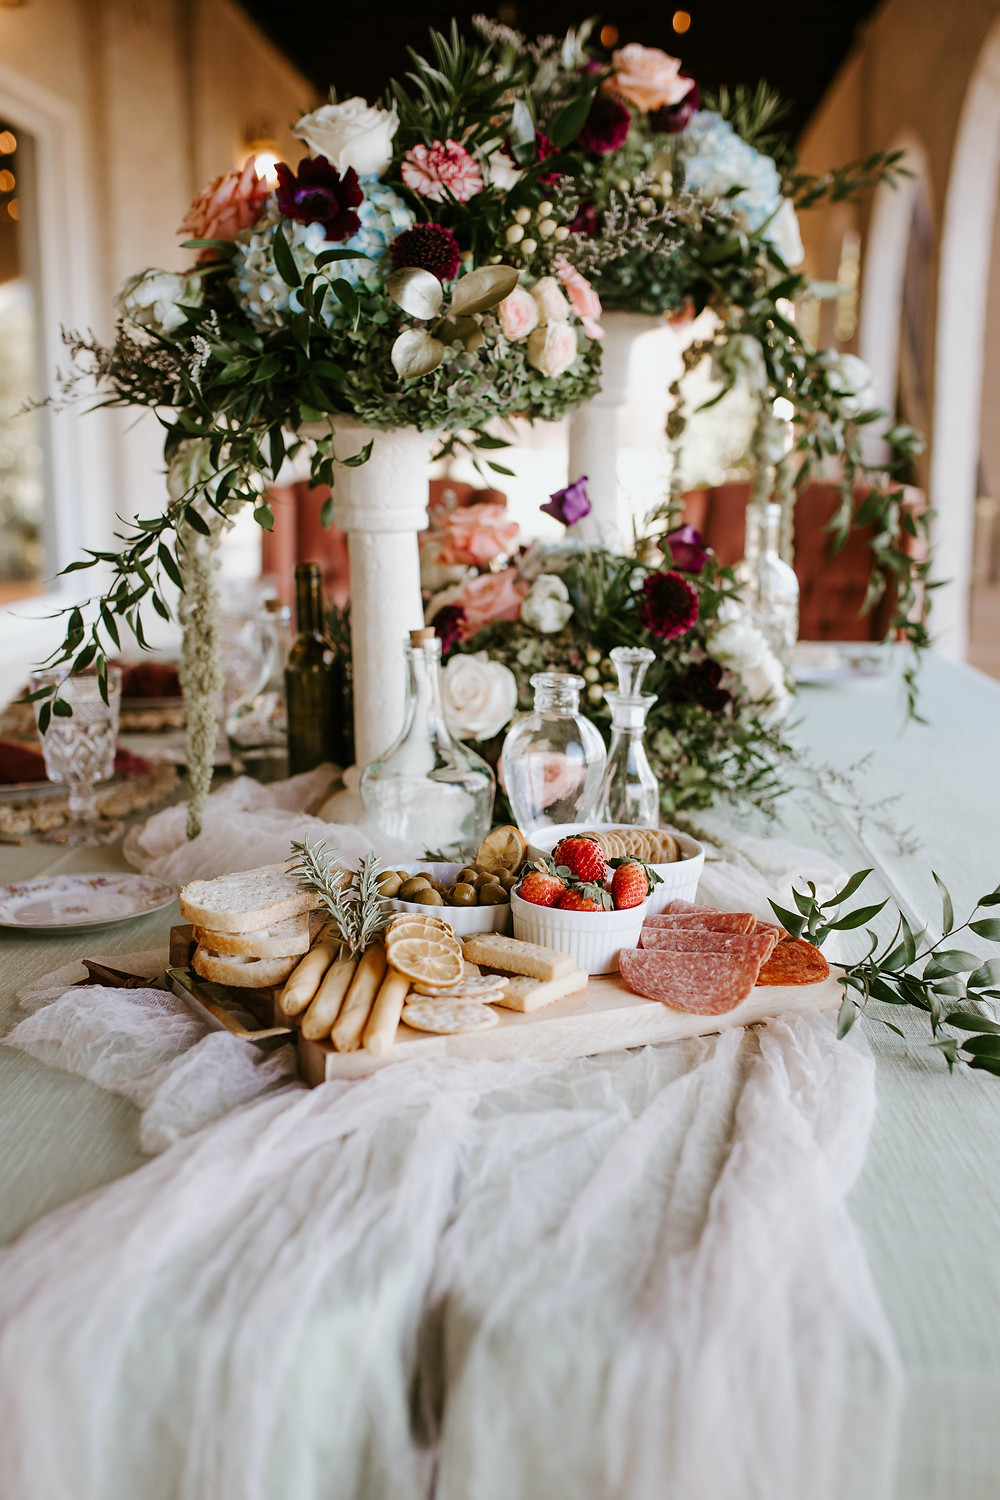 Beautiful grazing board with floral arrangement